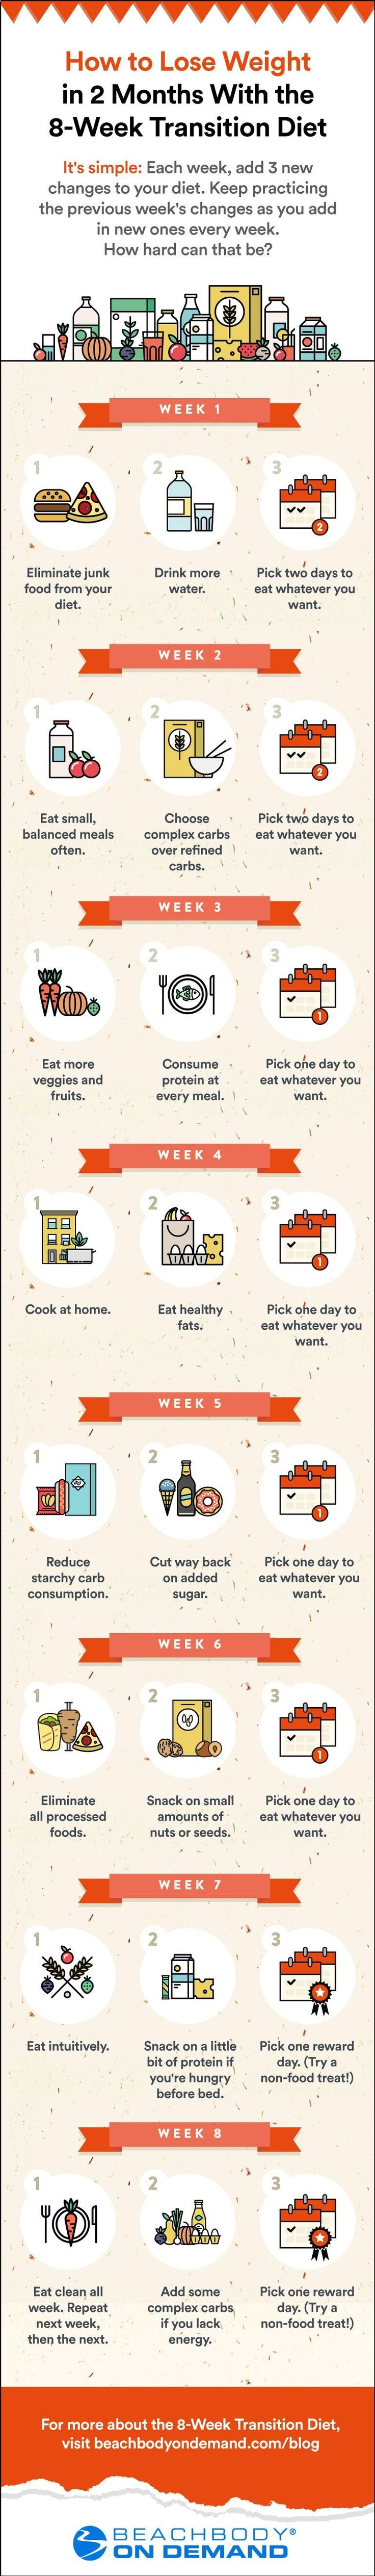 Effective home remedies to lose weight fast